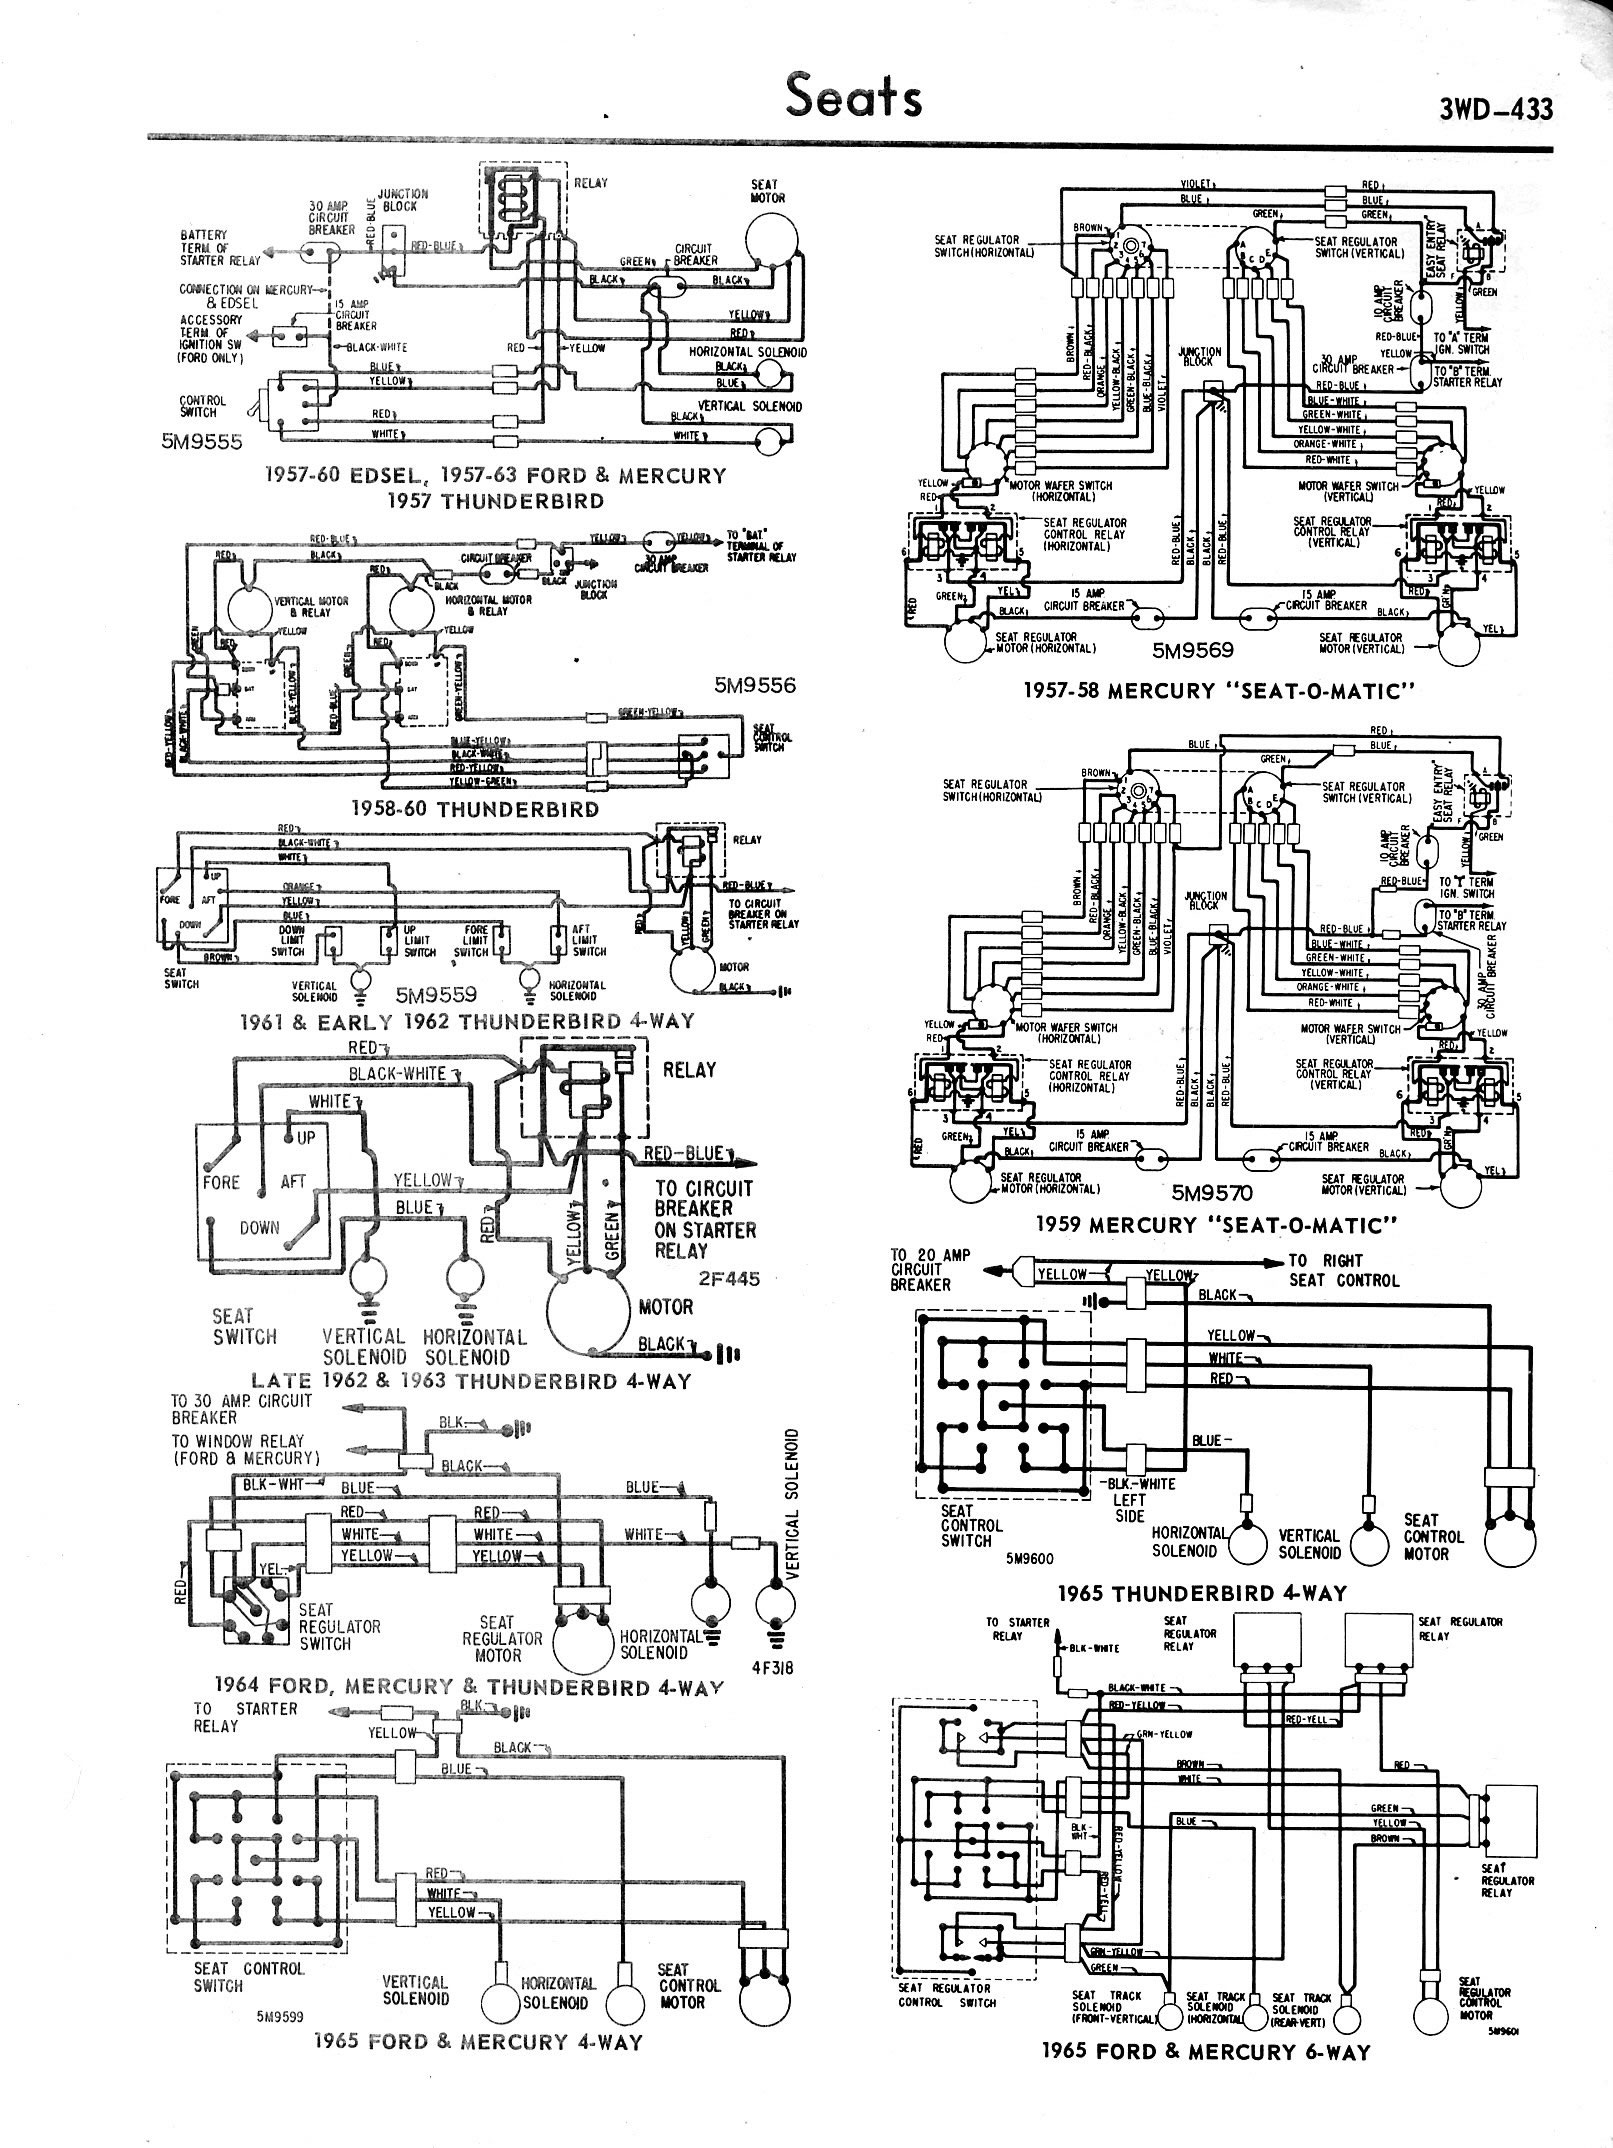 [WRG-5660] 1964 T Bird Wiring Diagram Seat